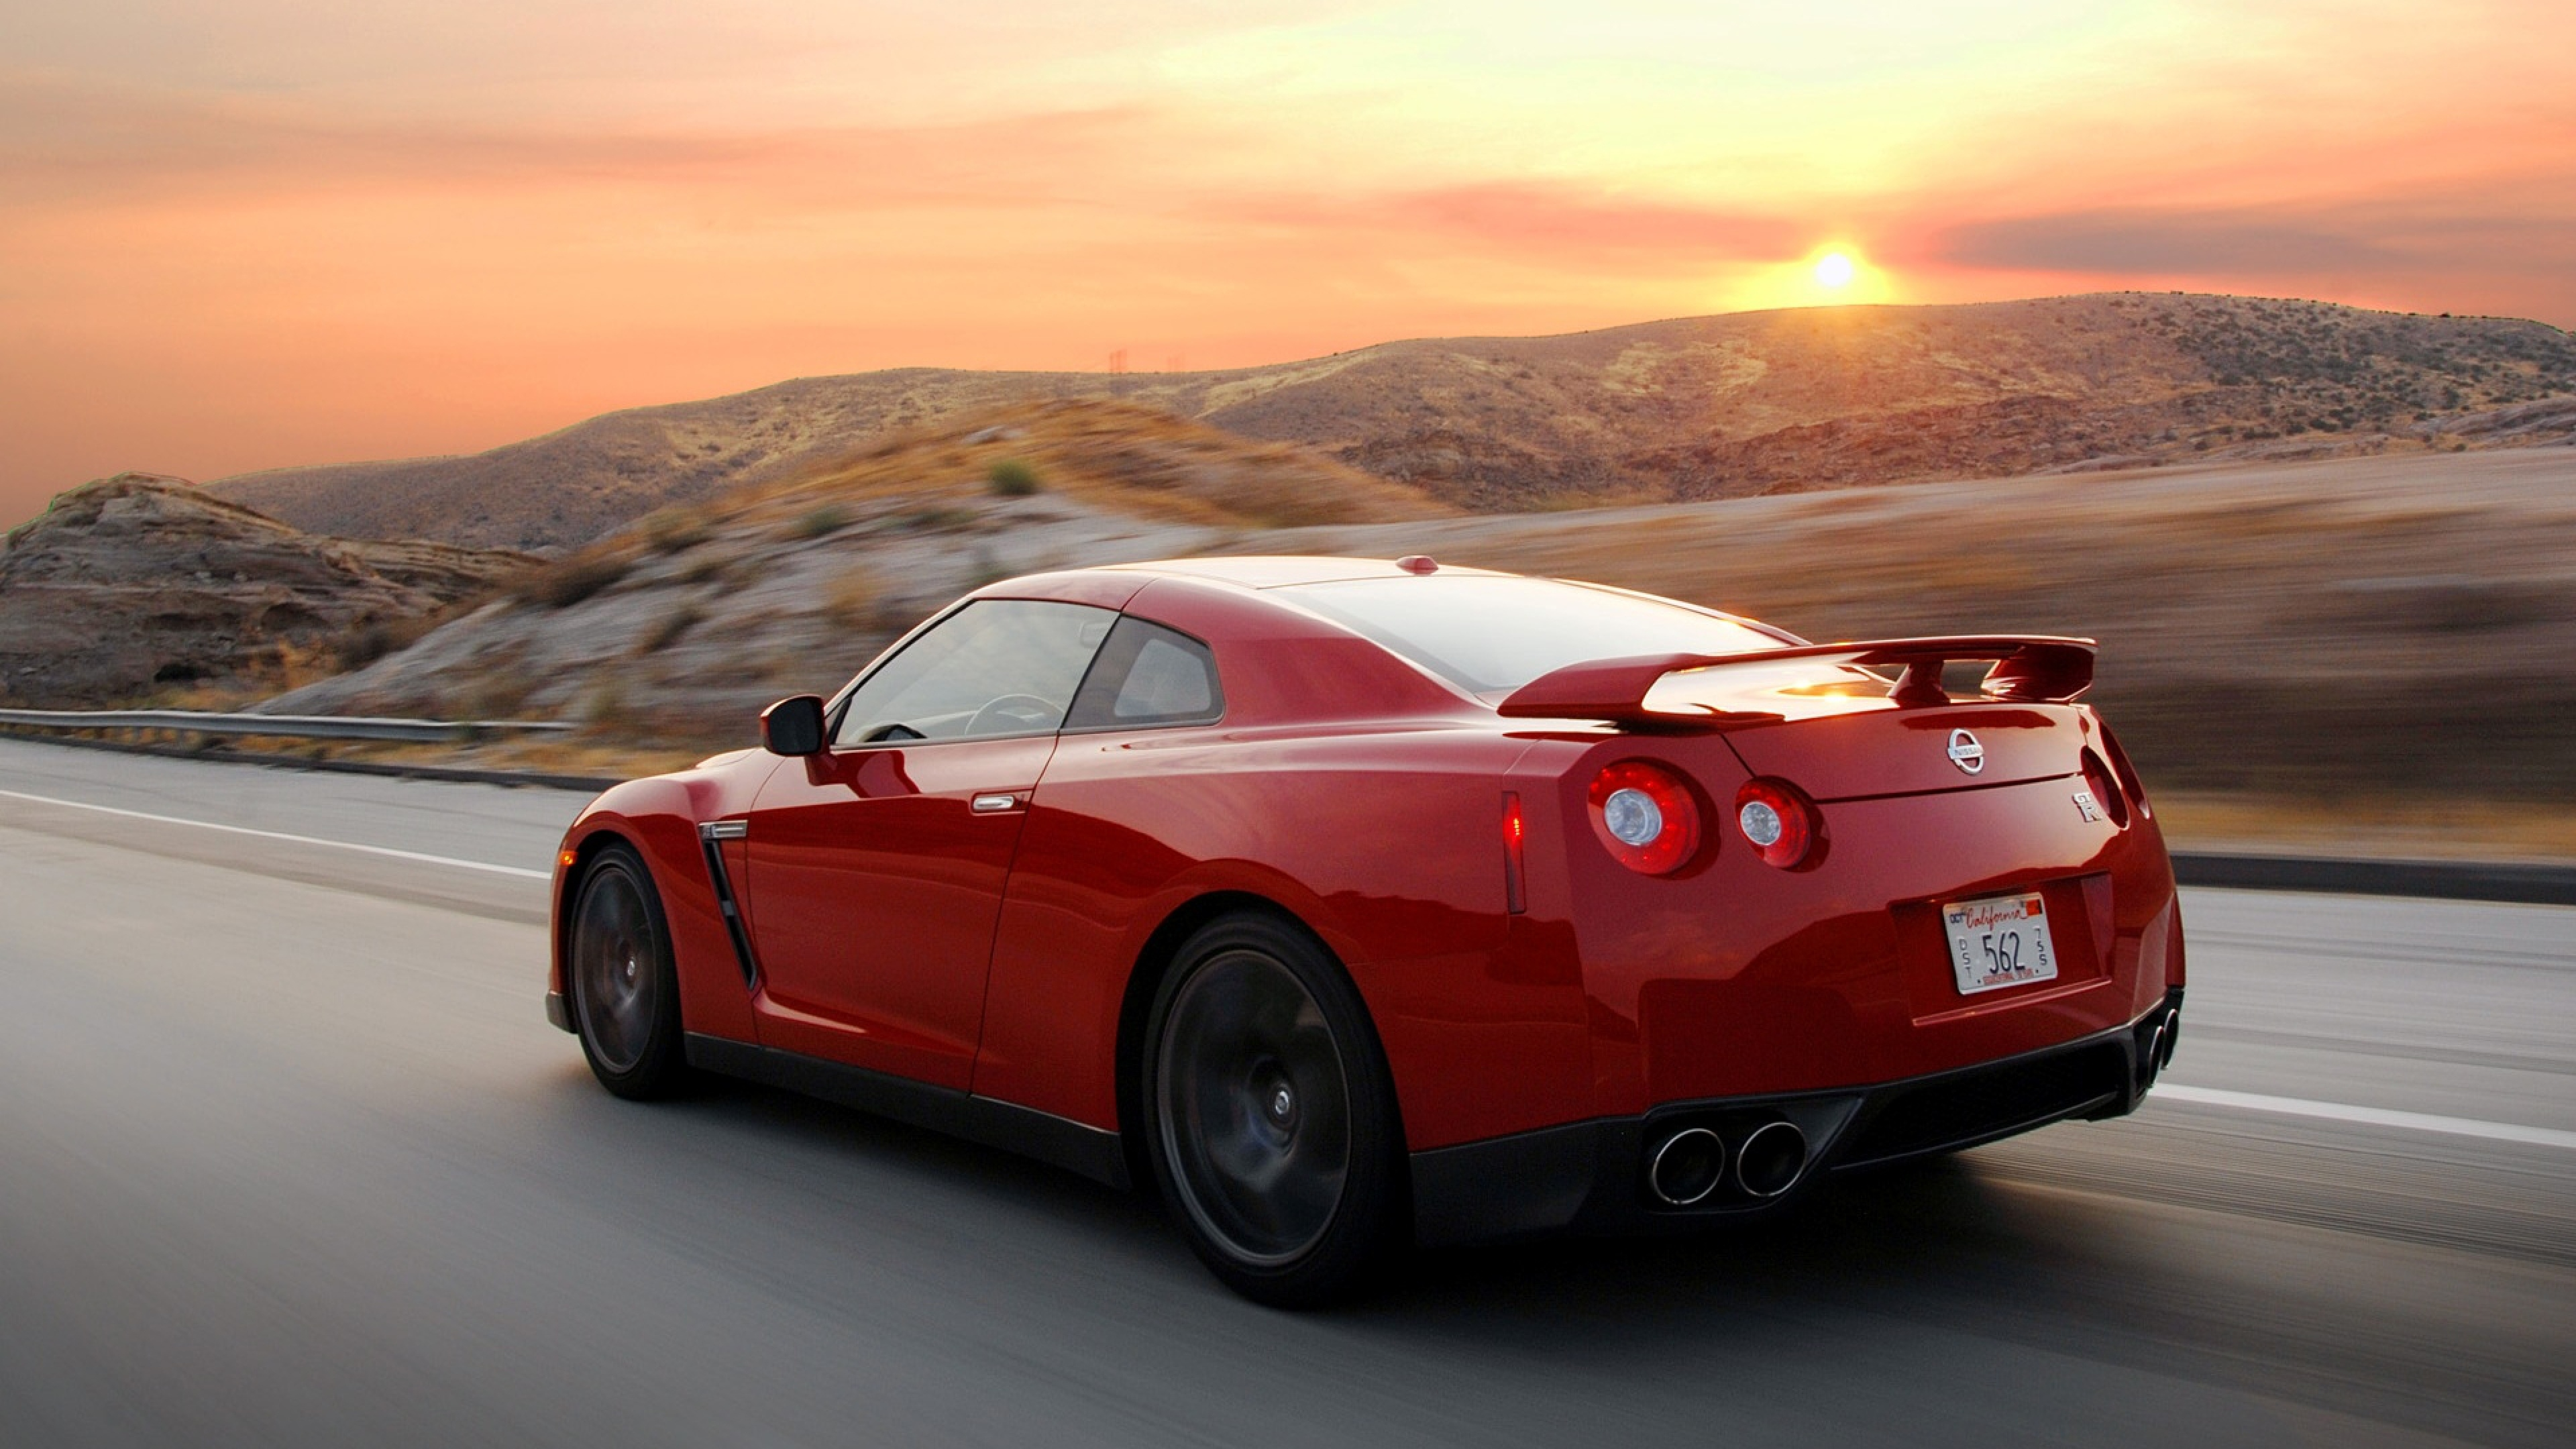 Nissan Red Run Moving Side view Wallpaper Background 4K Ultra HD 3840x2160